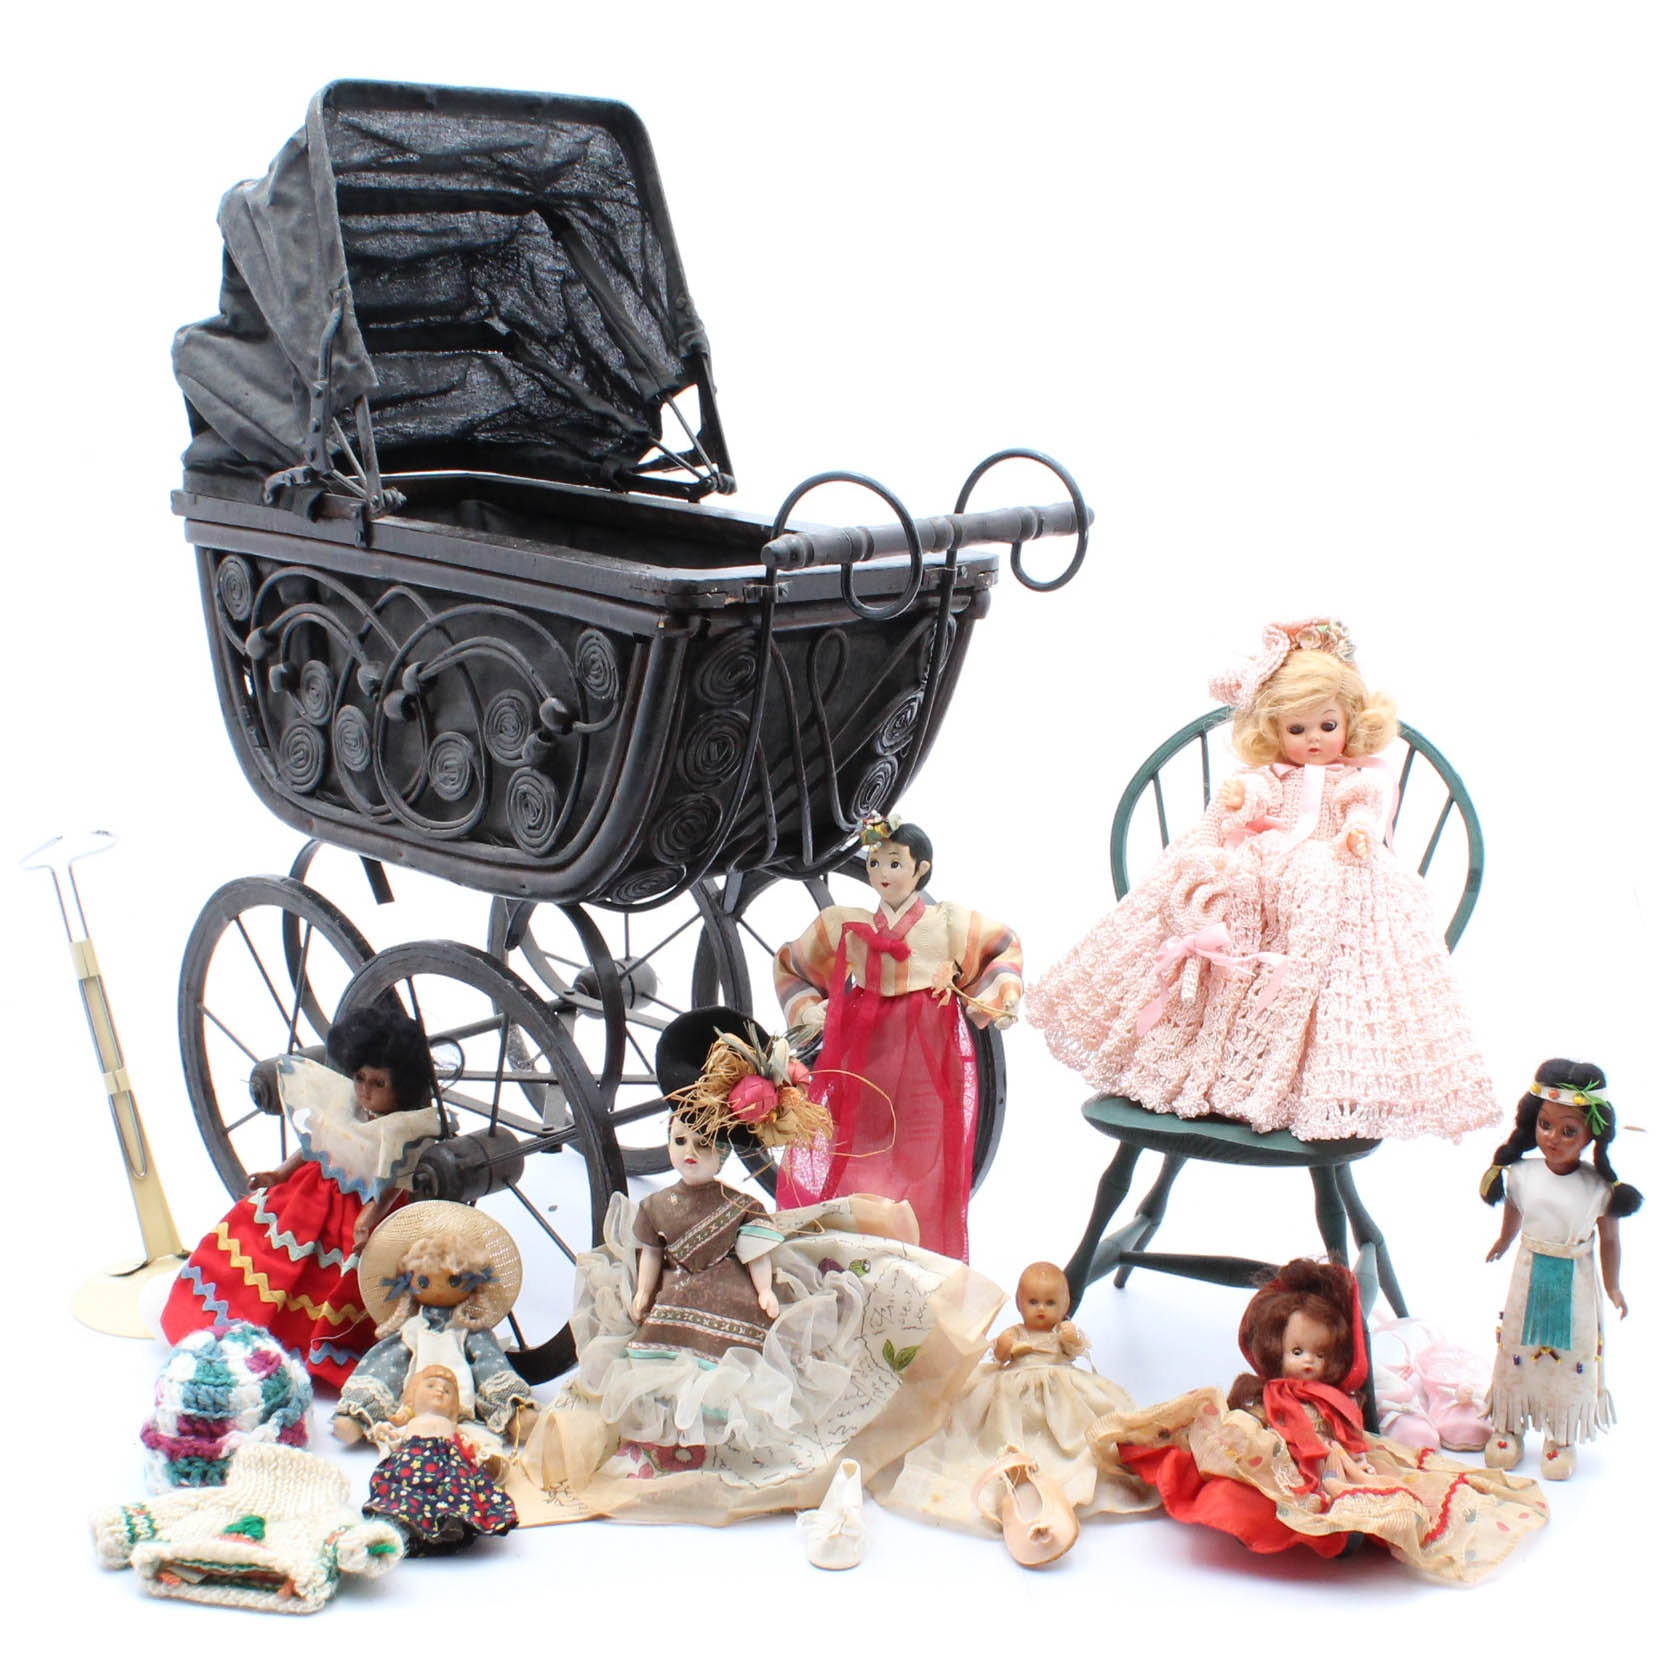 Dolls, Furnishings and Accessories